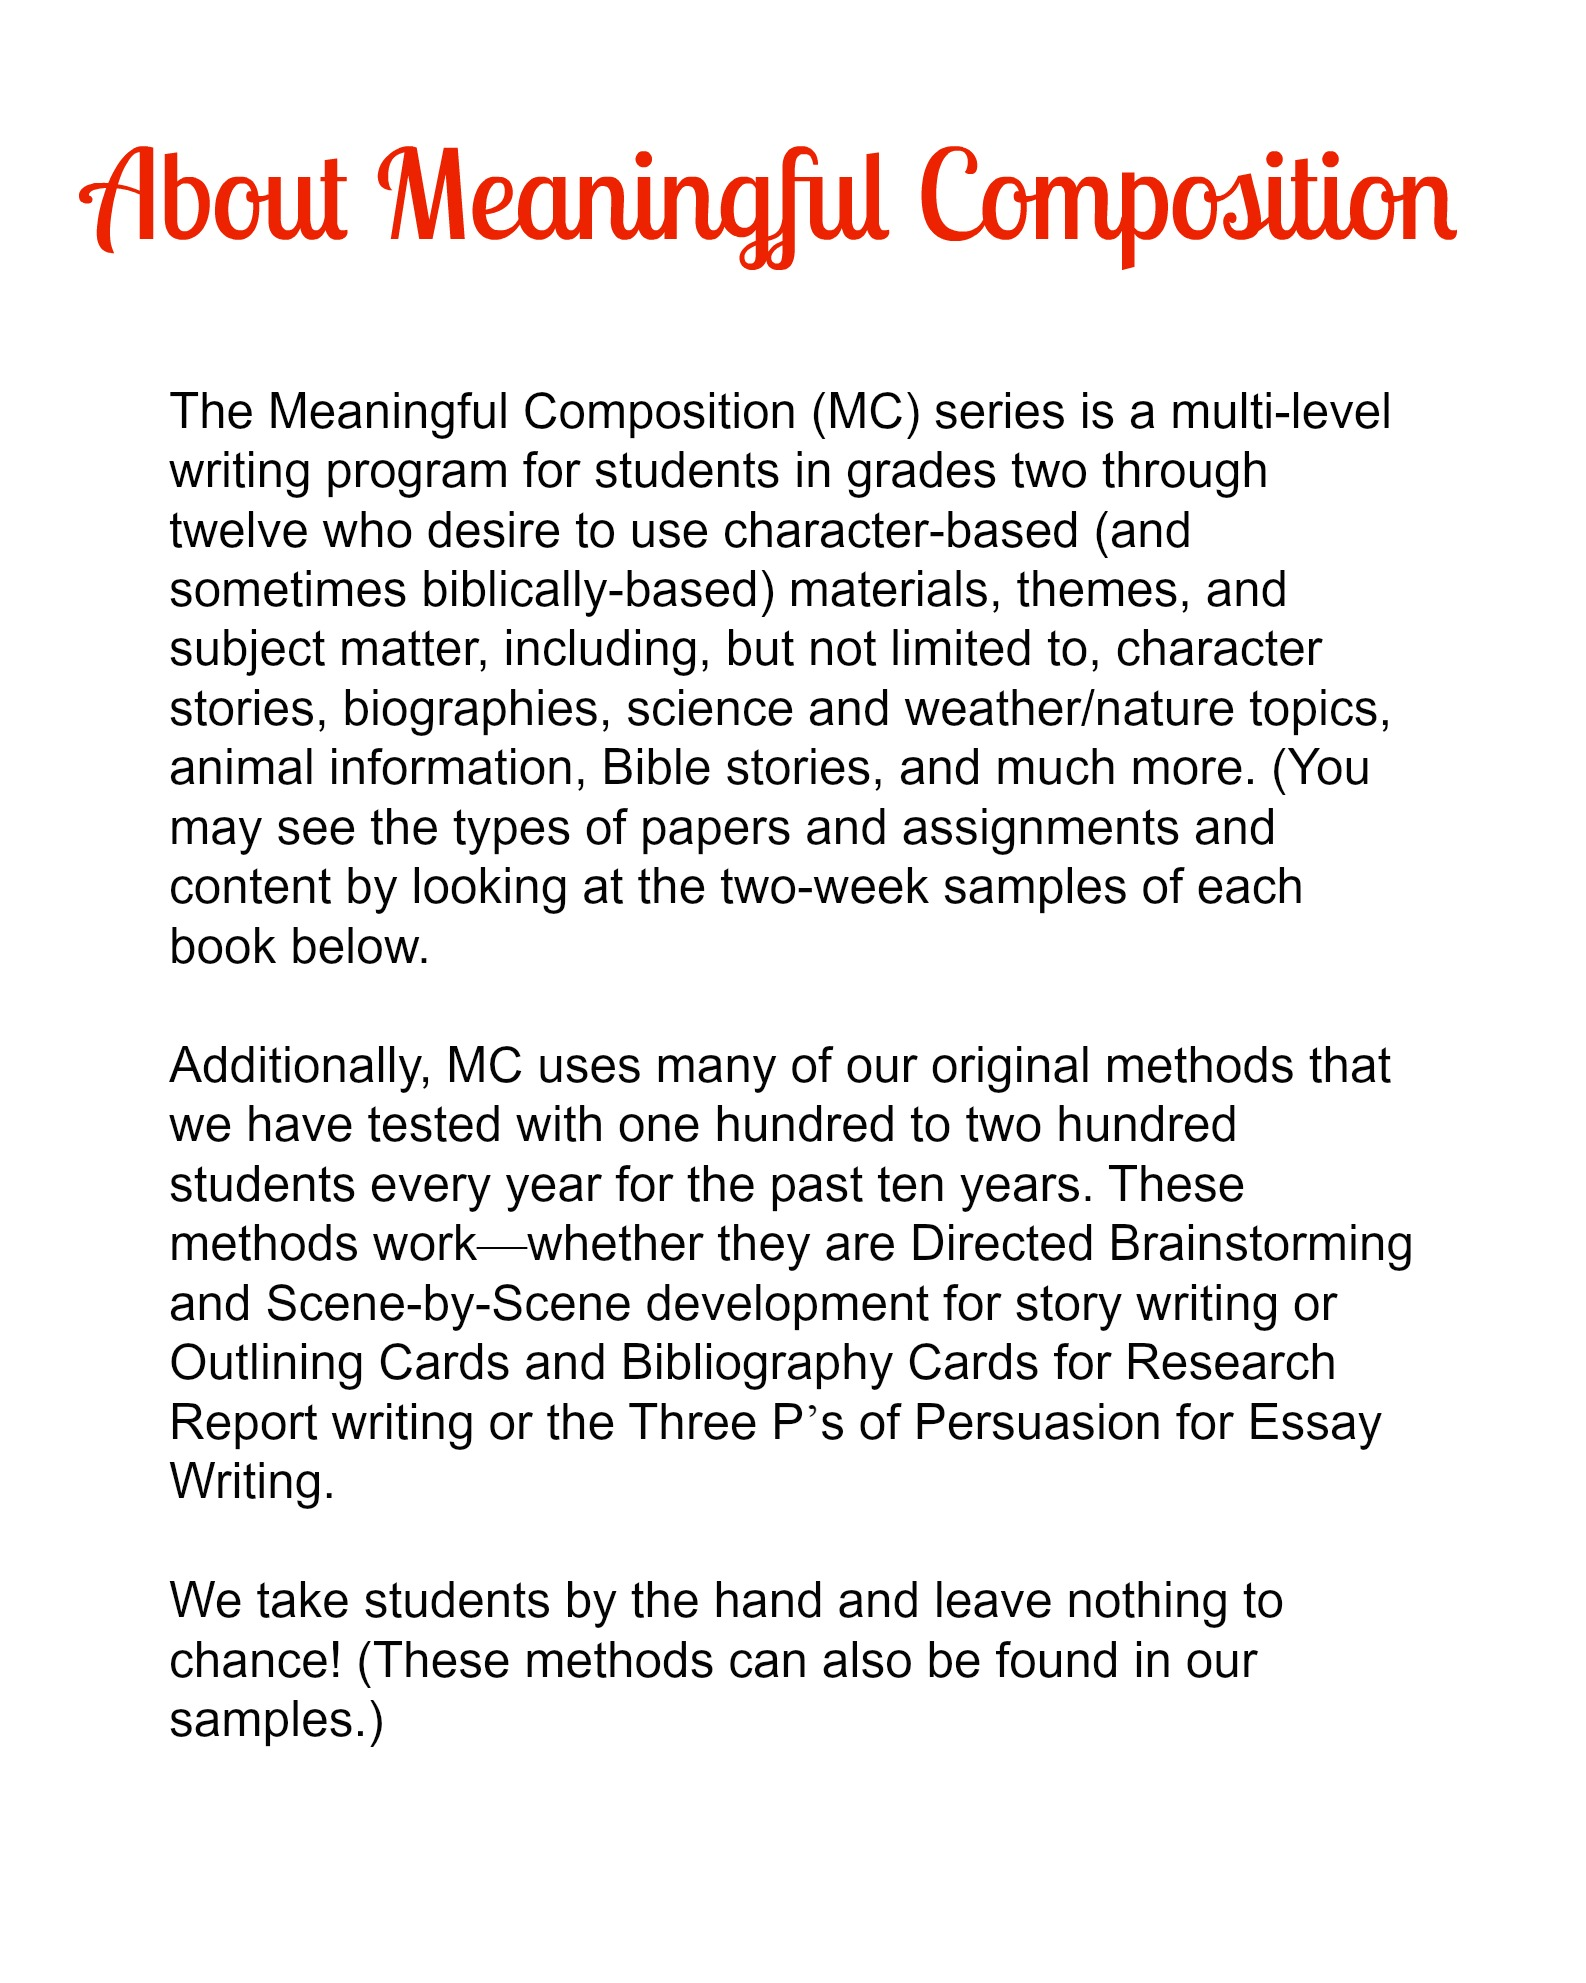 005 Essay Example Expository Examples Of Introductions Creative Writing Course Paragraph Persuasive On Bullying About Meaningful Compos Cyber How To Prevent Five Magnificent Essays Argumentative Pdf Papers Full